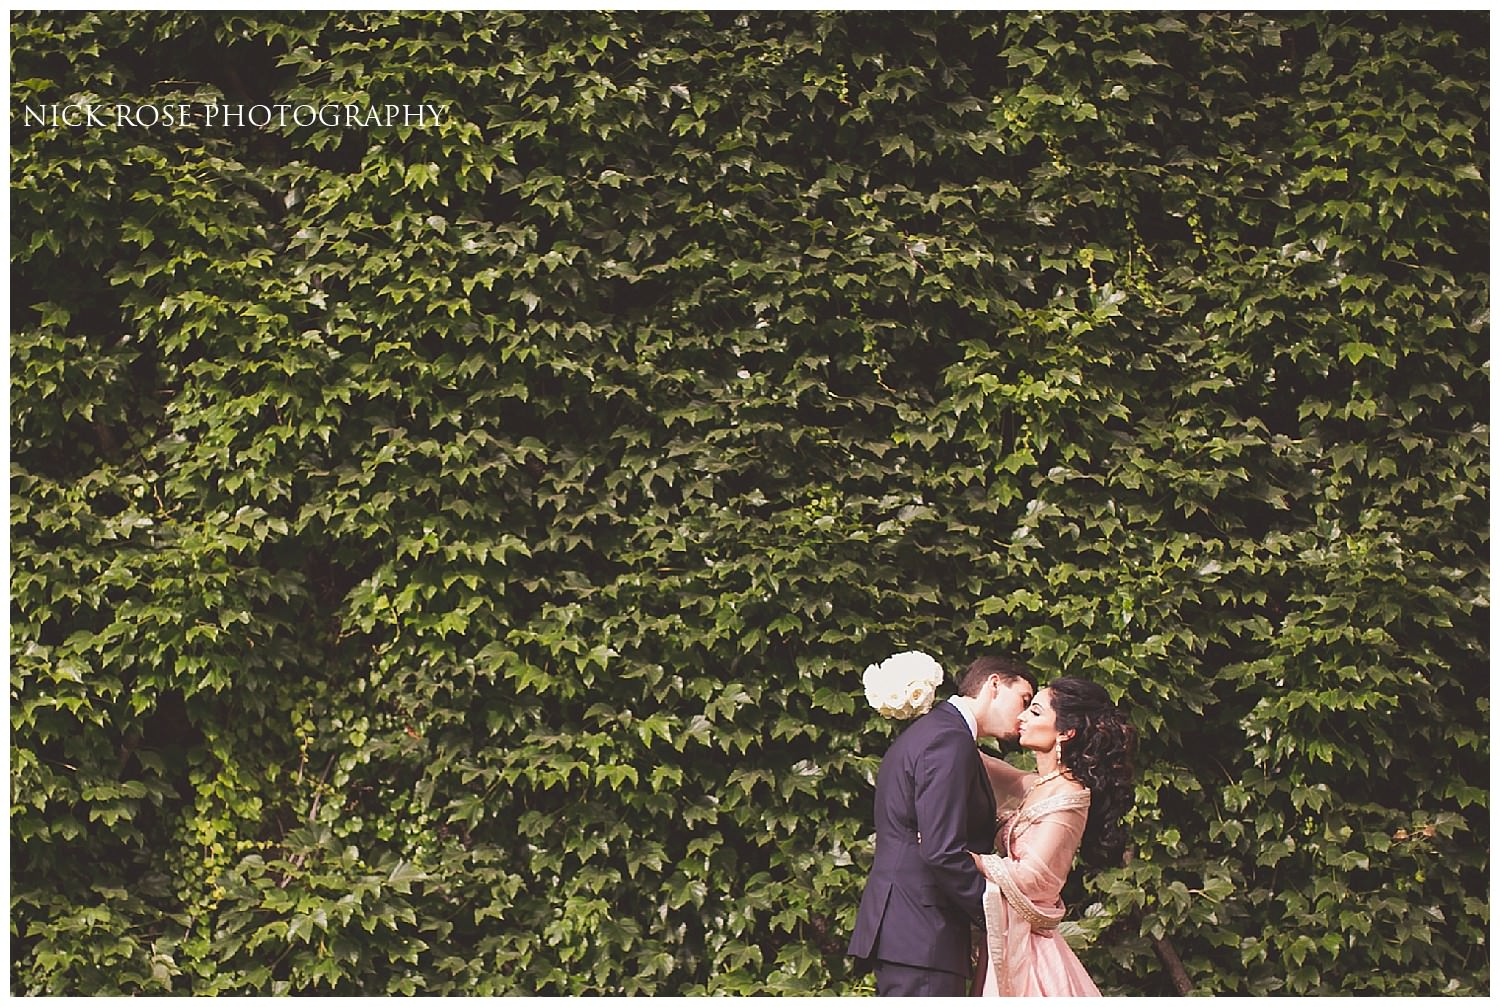 Wedding Photography in Pall Mall London